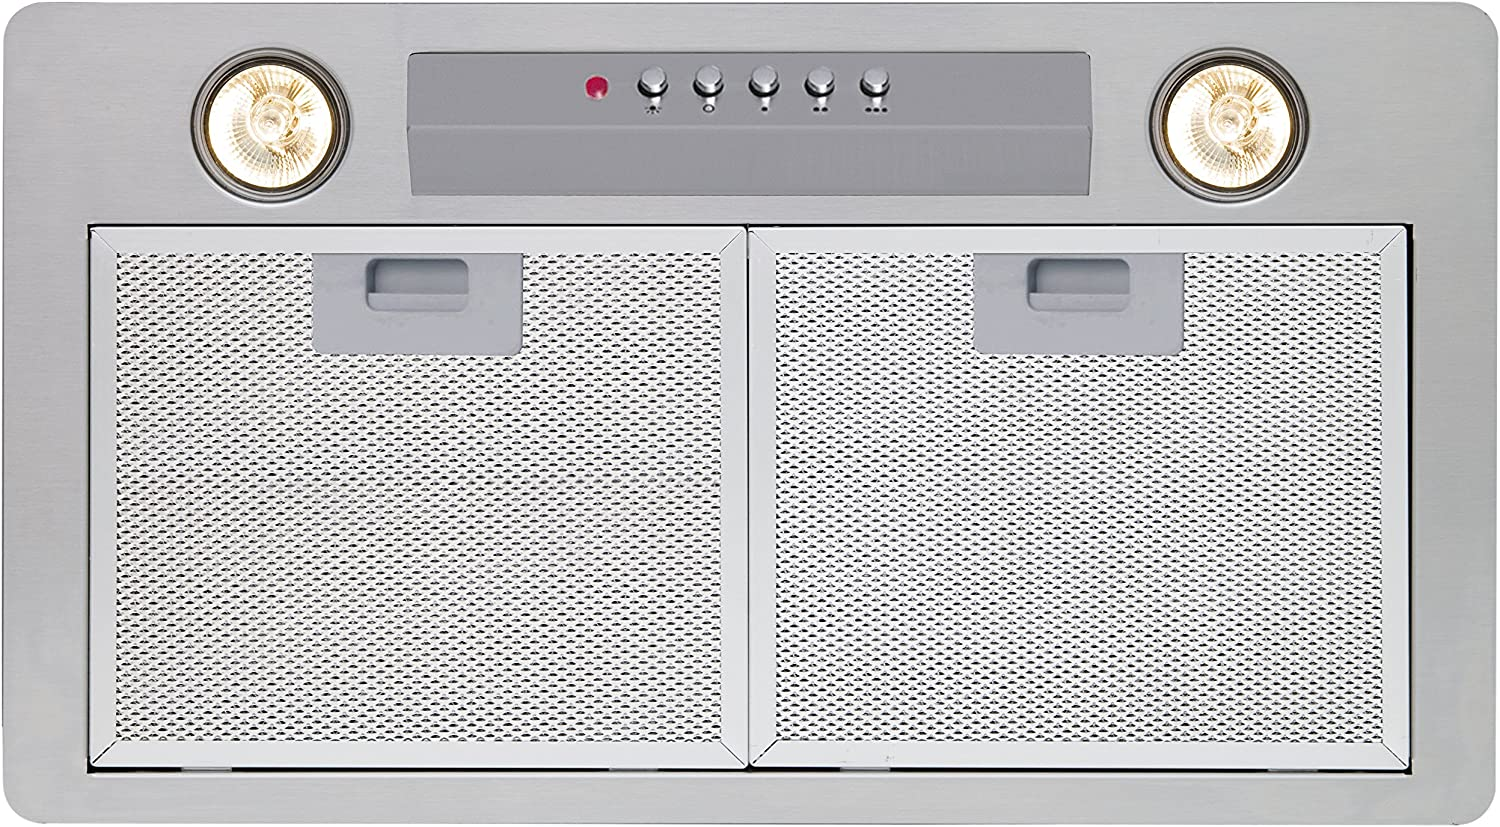 CATA GT Plus Fully built-in cooker hood Acero inoxidable 600 m³/h - Campana (600 m³/h, 50 dB, 65 dB, Fully built-in cooker hood, Acero inoxidable, 2 bulb(s)): Amazon.es: Grandes electrodomésticos